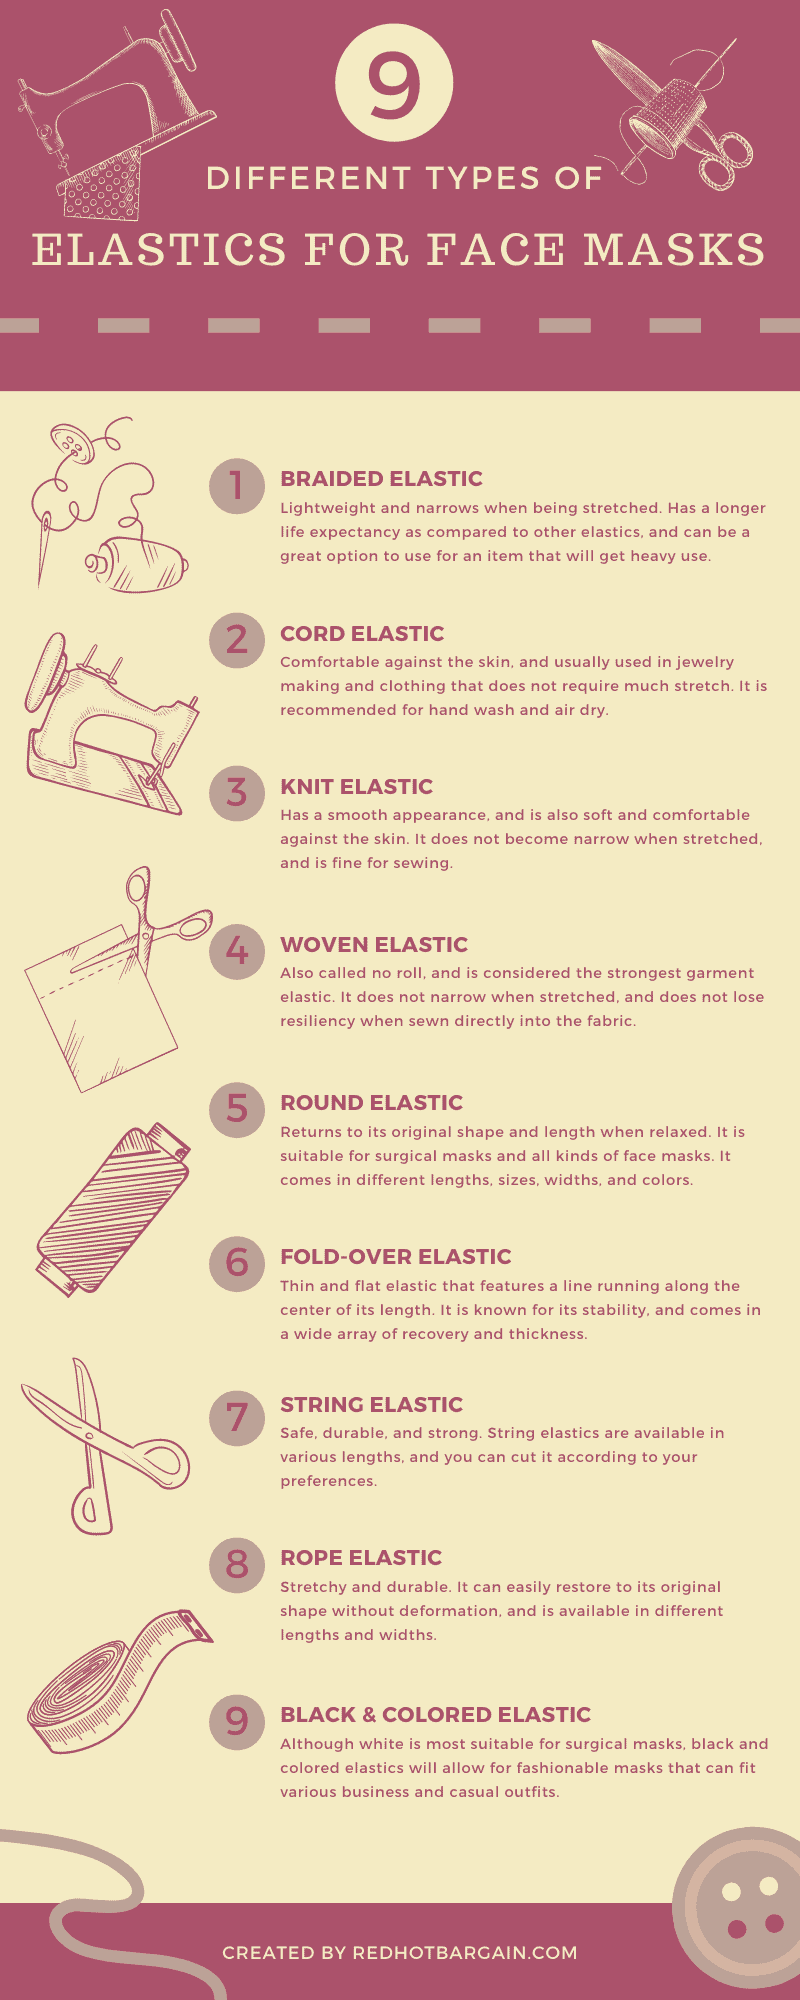 Types of Elastics for Face Masks